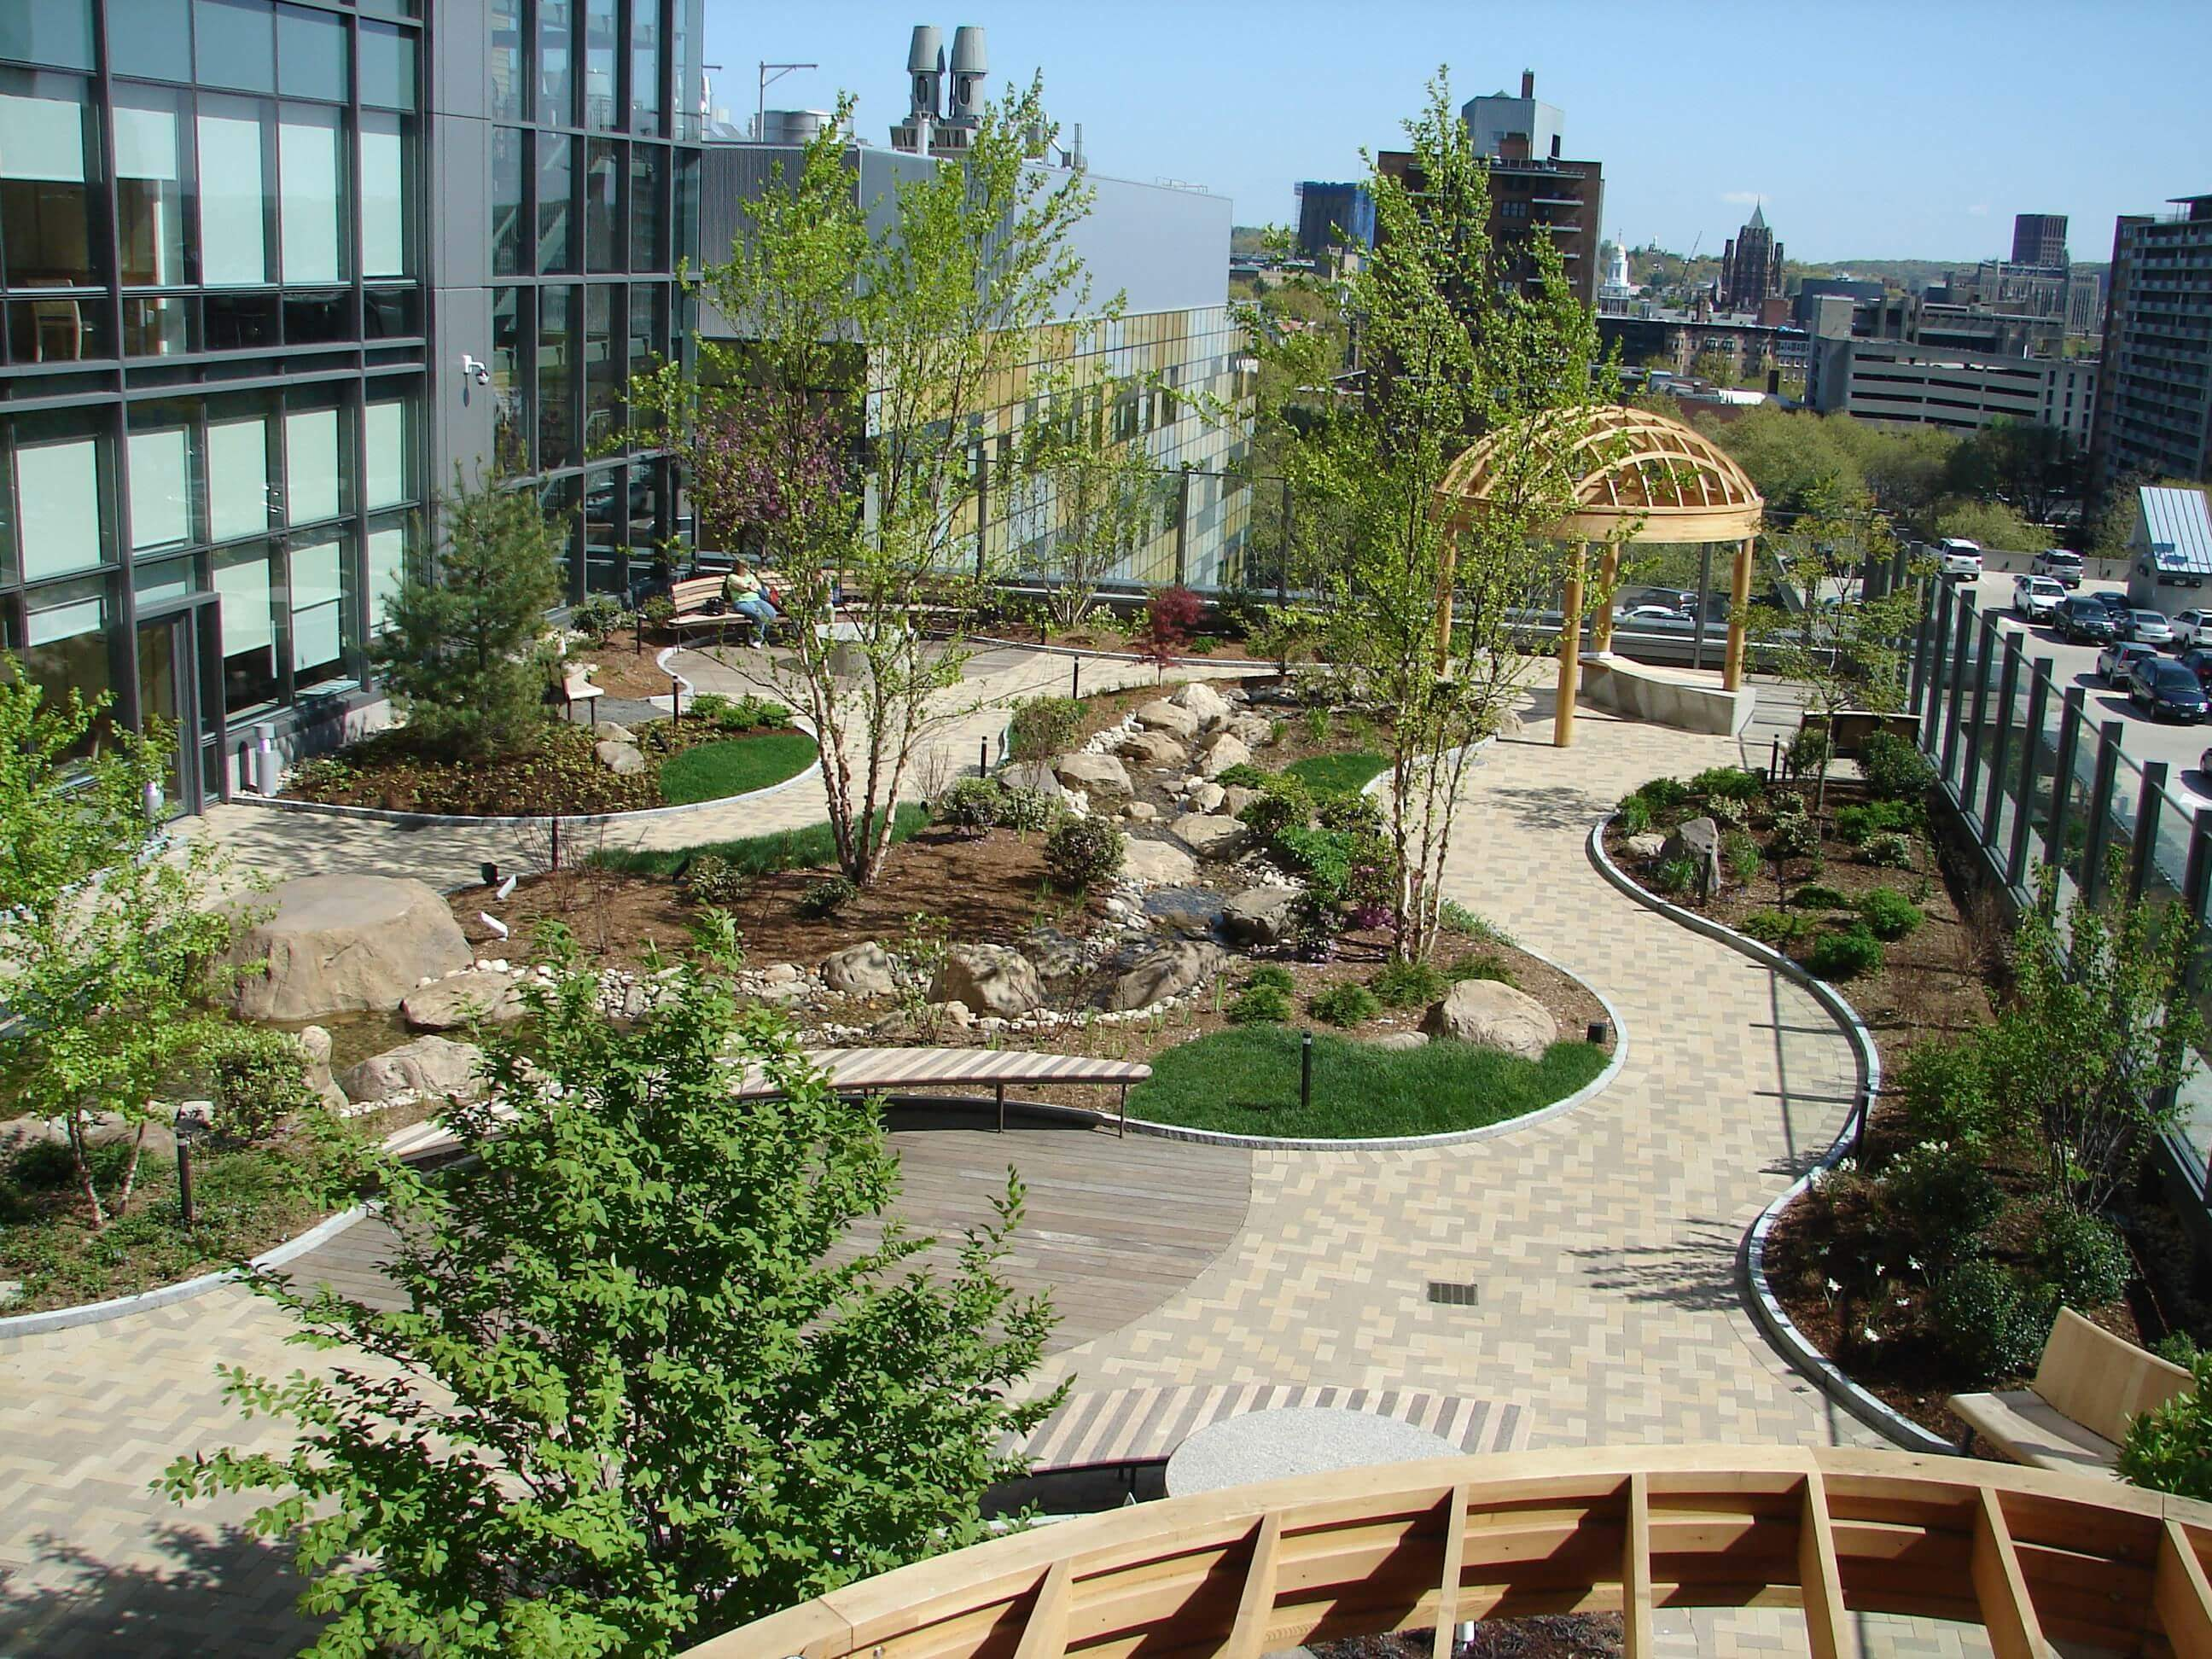 Design Green Landscapes: Environmental Benefits Of Green Roofs In Commercial And